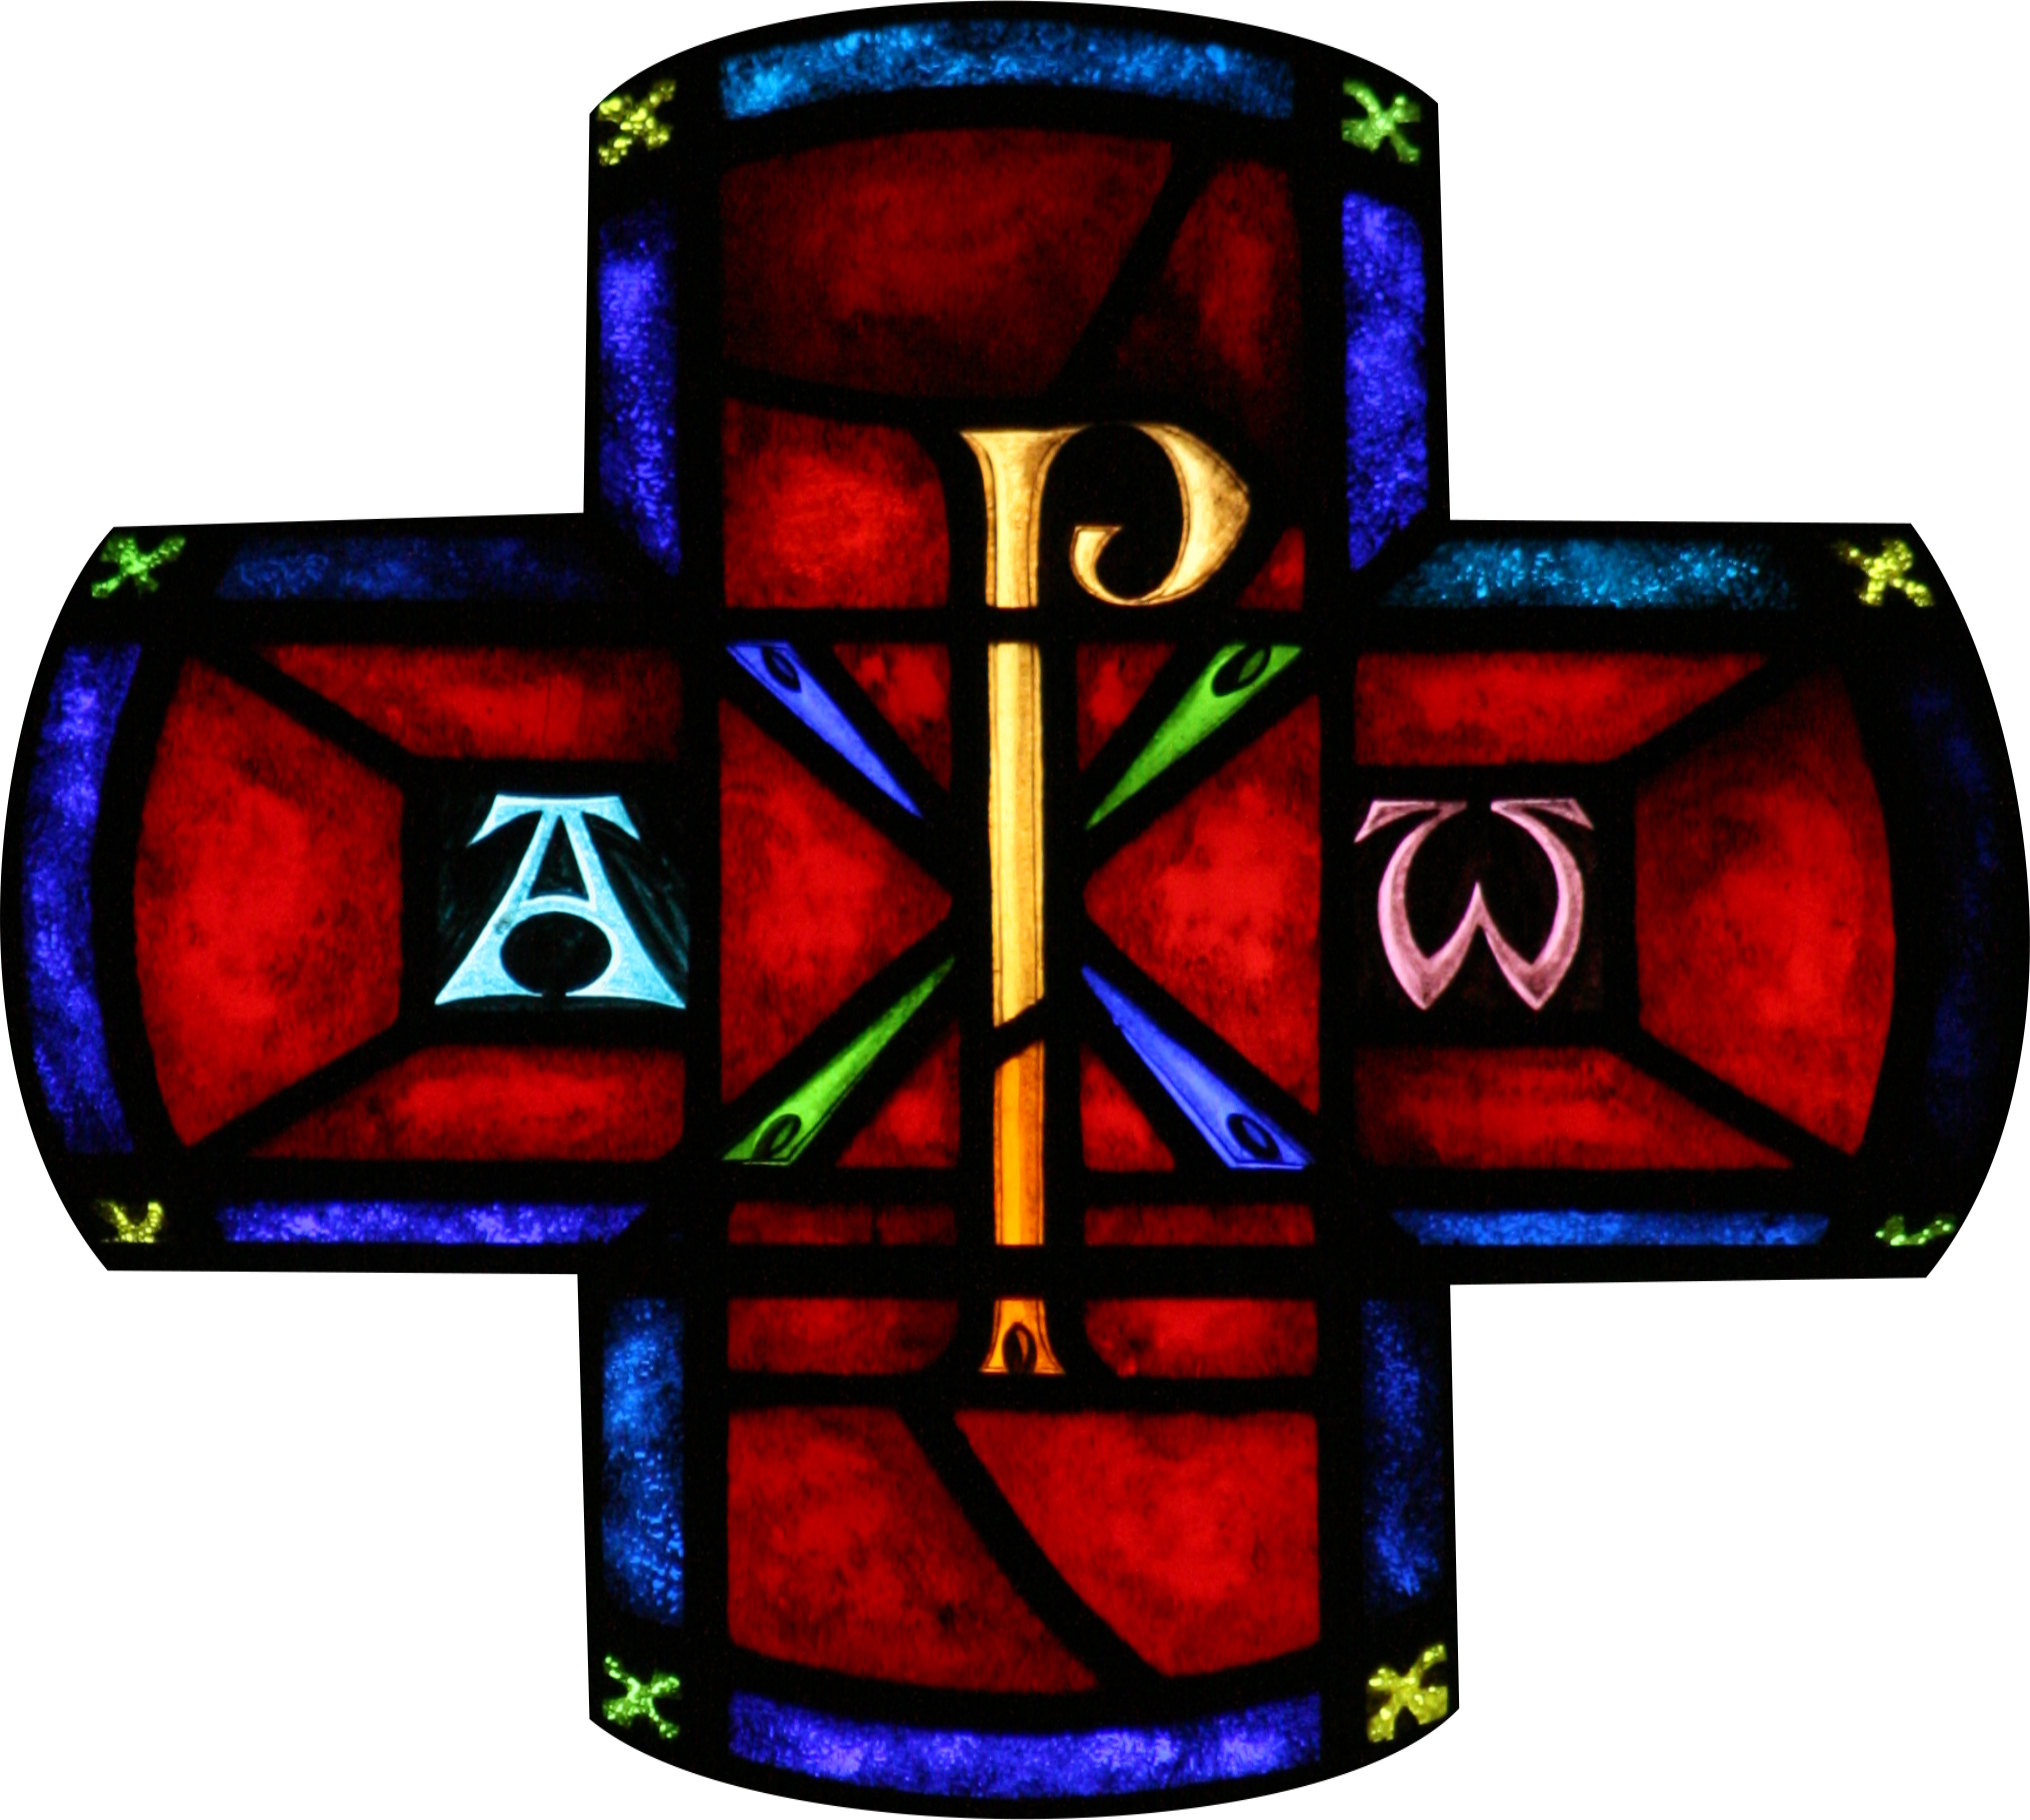 Filexp symbol with the alpha and omega symbols 001g the work filexp symbol with the alpha and omega symbols 001g buycottarizona